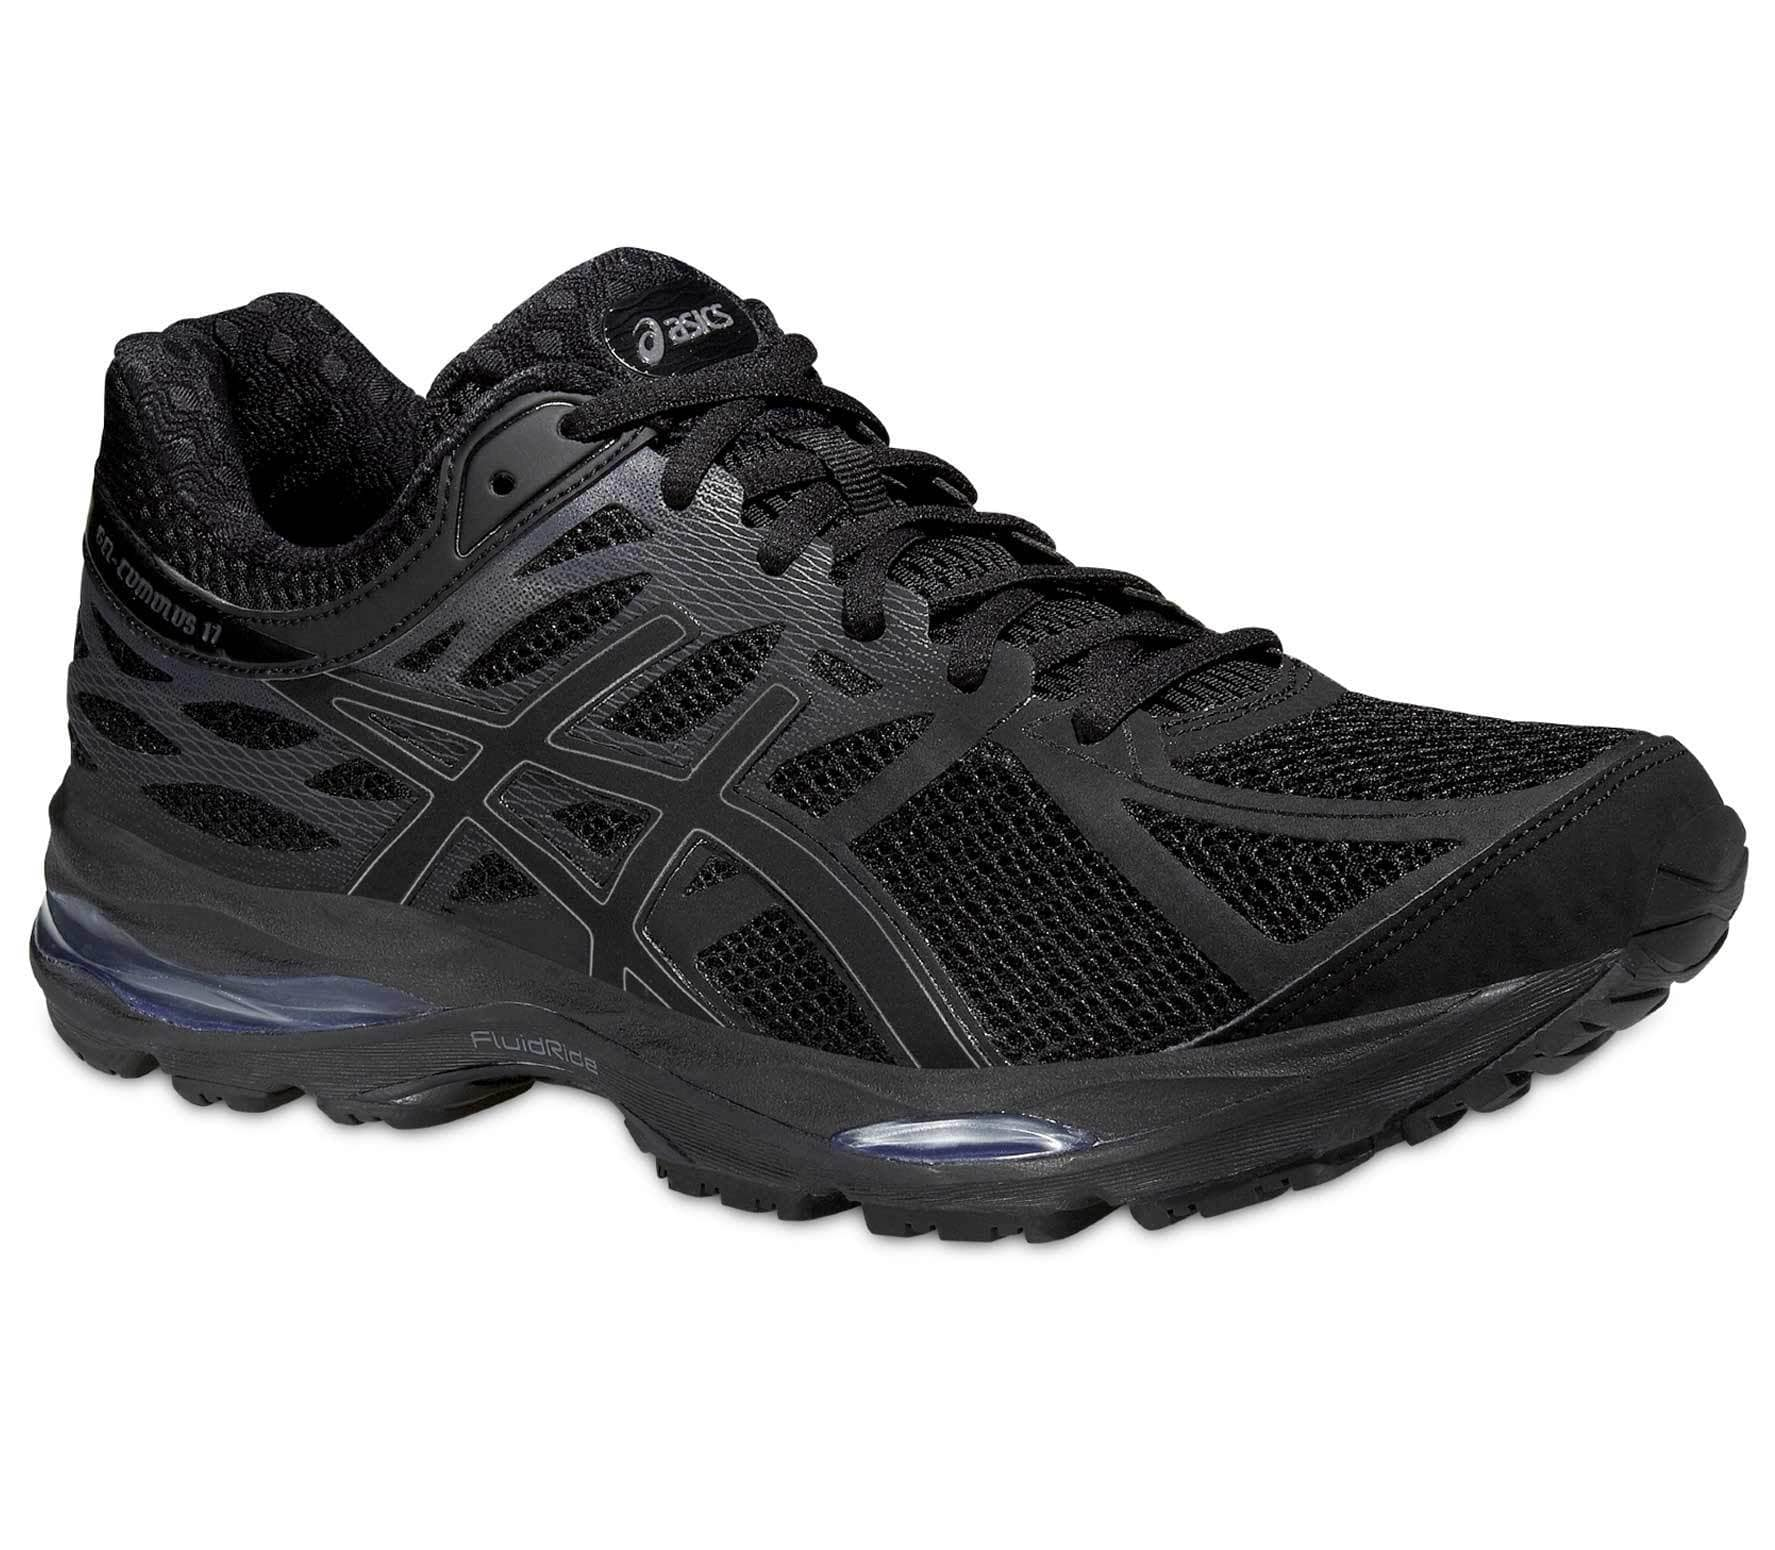 ASICS Gel Cumulus 17 men's running shoe Herren